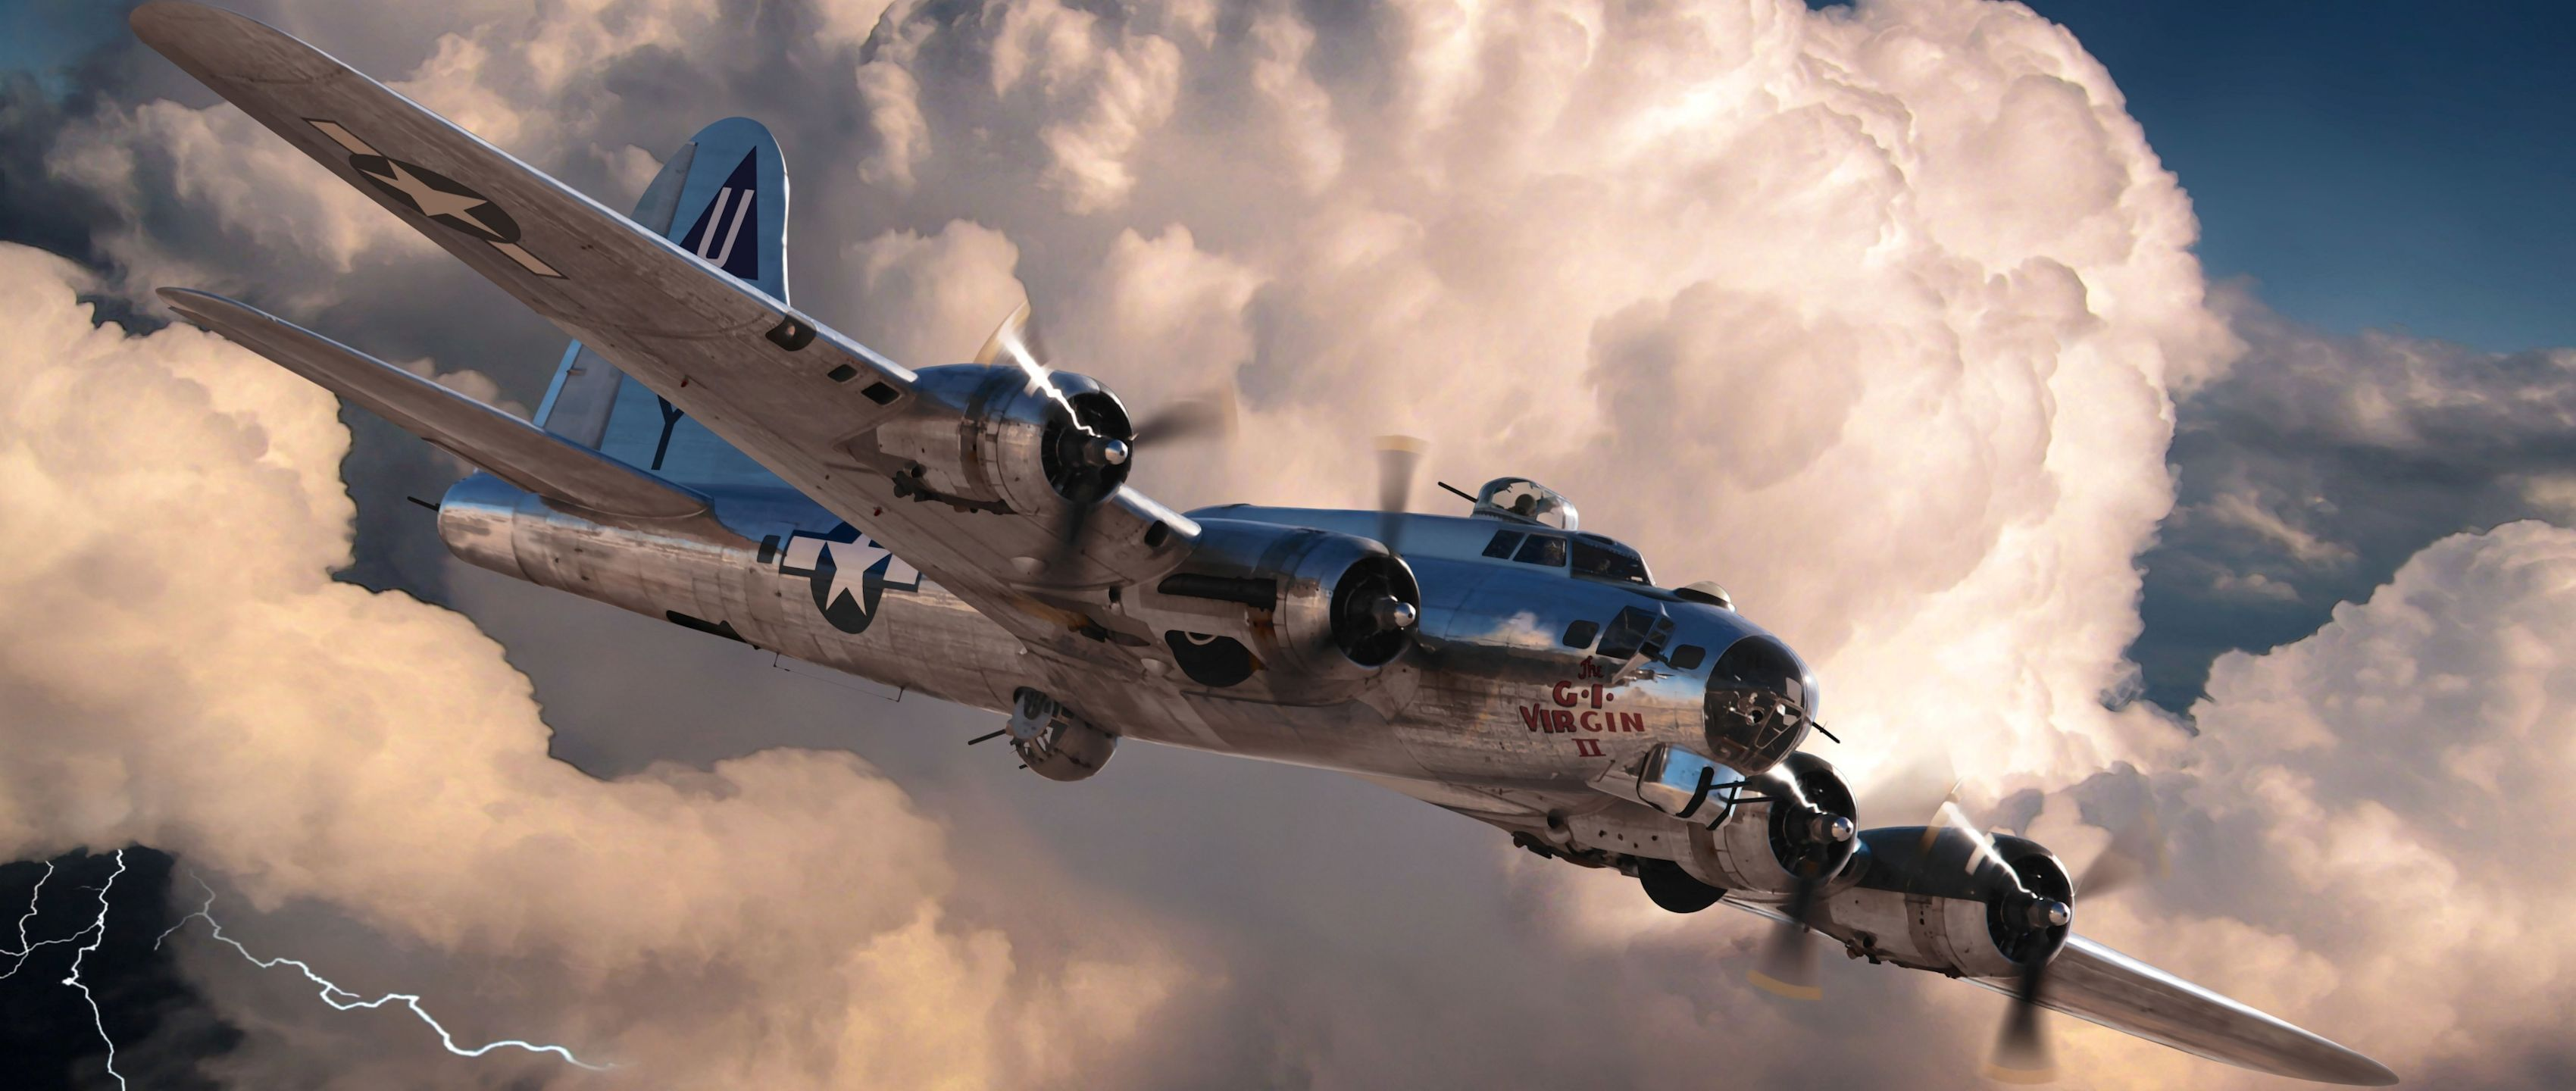 3440x1440 Boeing B 17 Flying Fortress   Wallpaper Cart 3400x1440